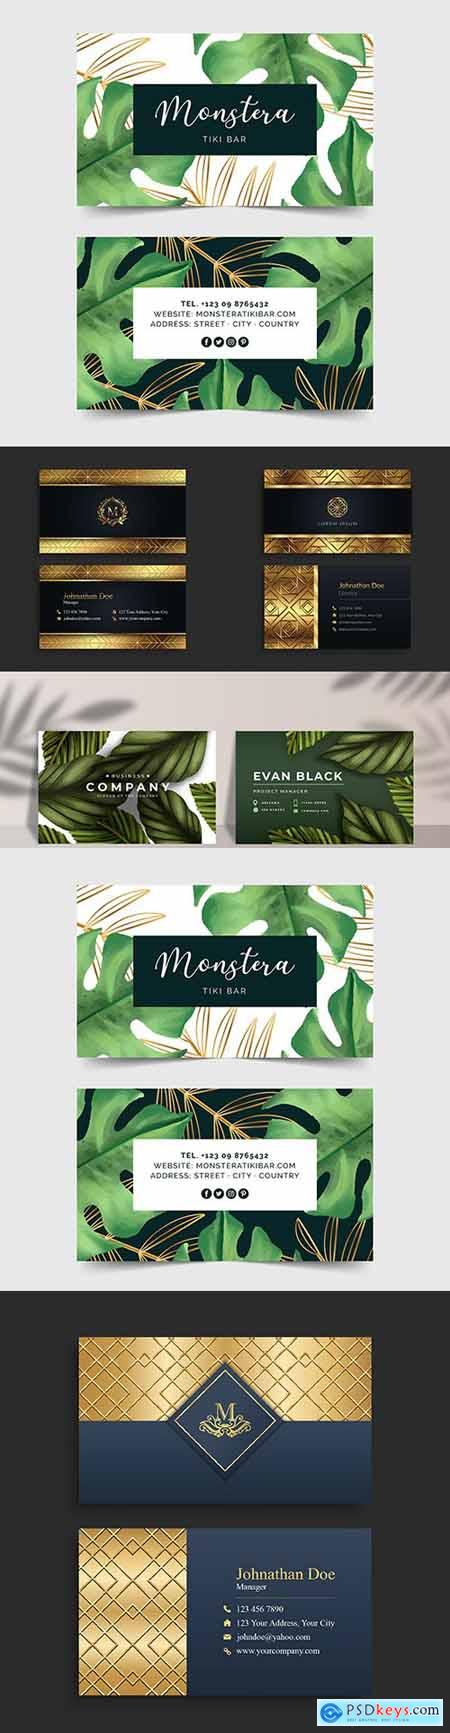 Luxury black and gold business card modern design